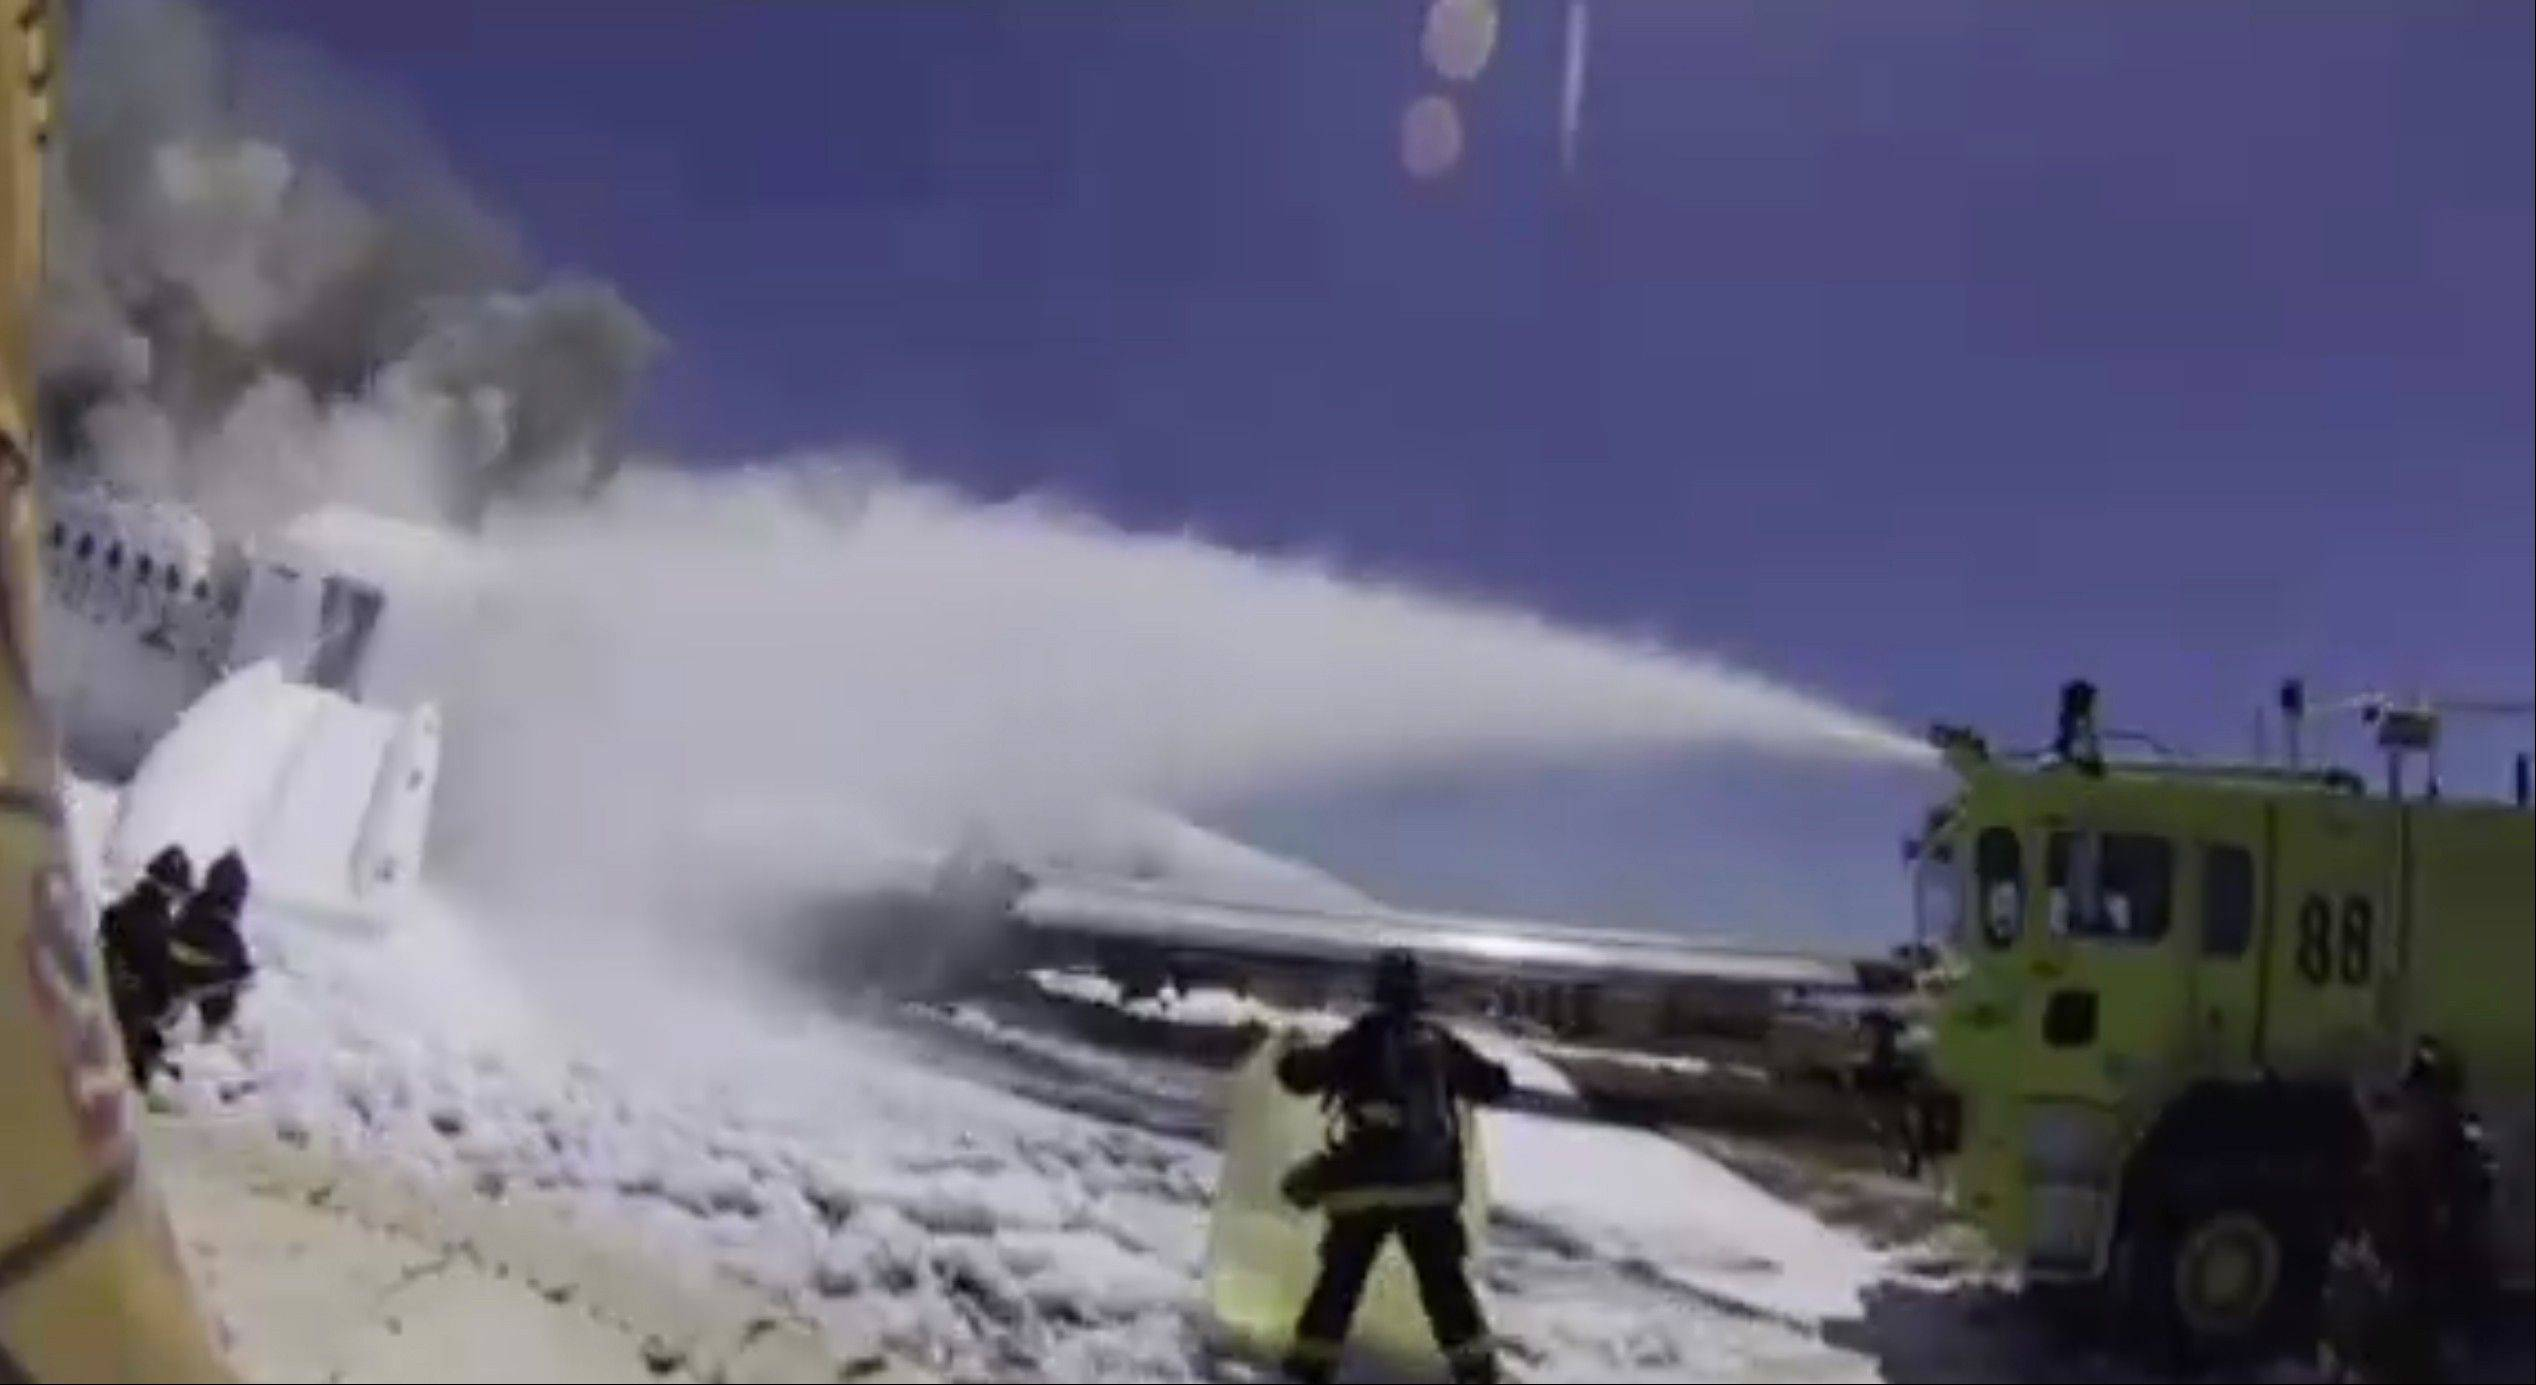 Video footage from the firefighter's helmet camera in the wake of the crash landing shows fire personnel were aware there was someone on the ground outside the plane. Authorities have said that person, Ye Meng Yuan, was alive following the crash, but later run over and killed by a firetruck.